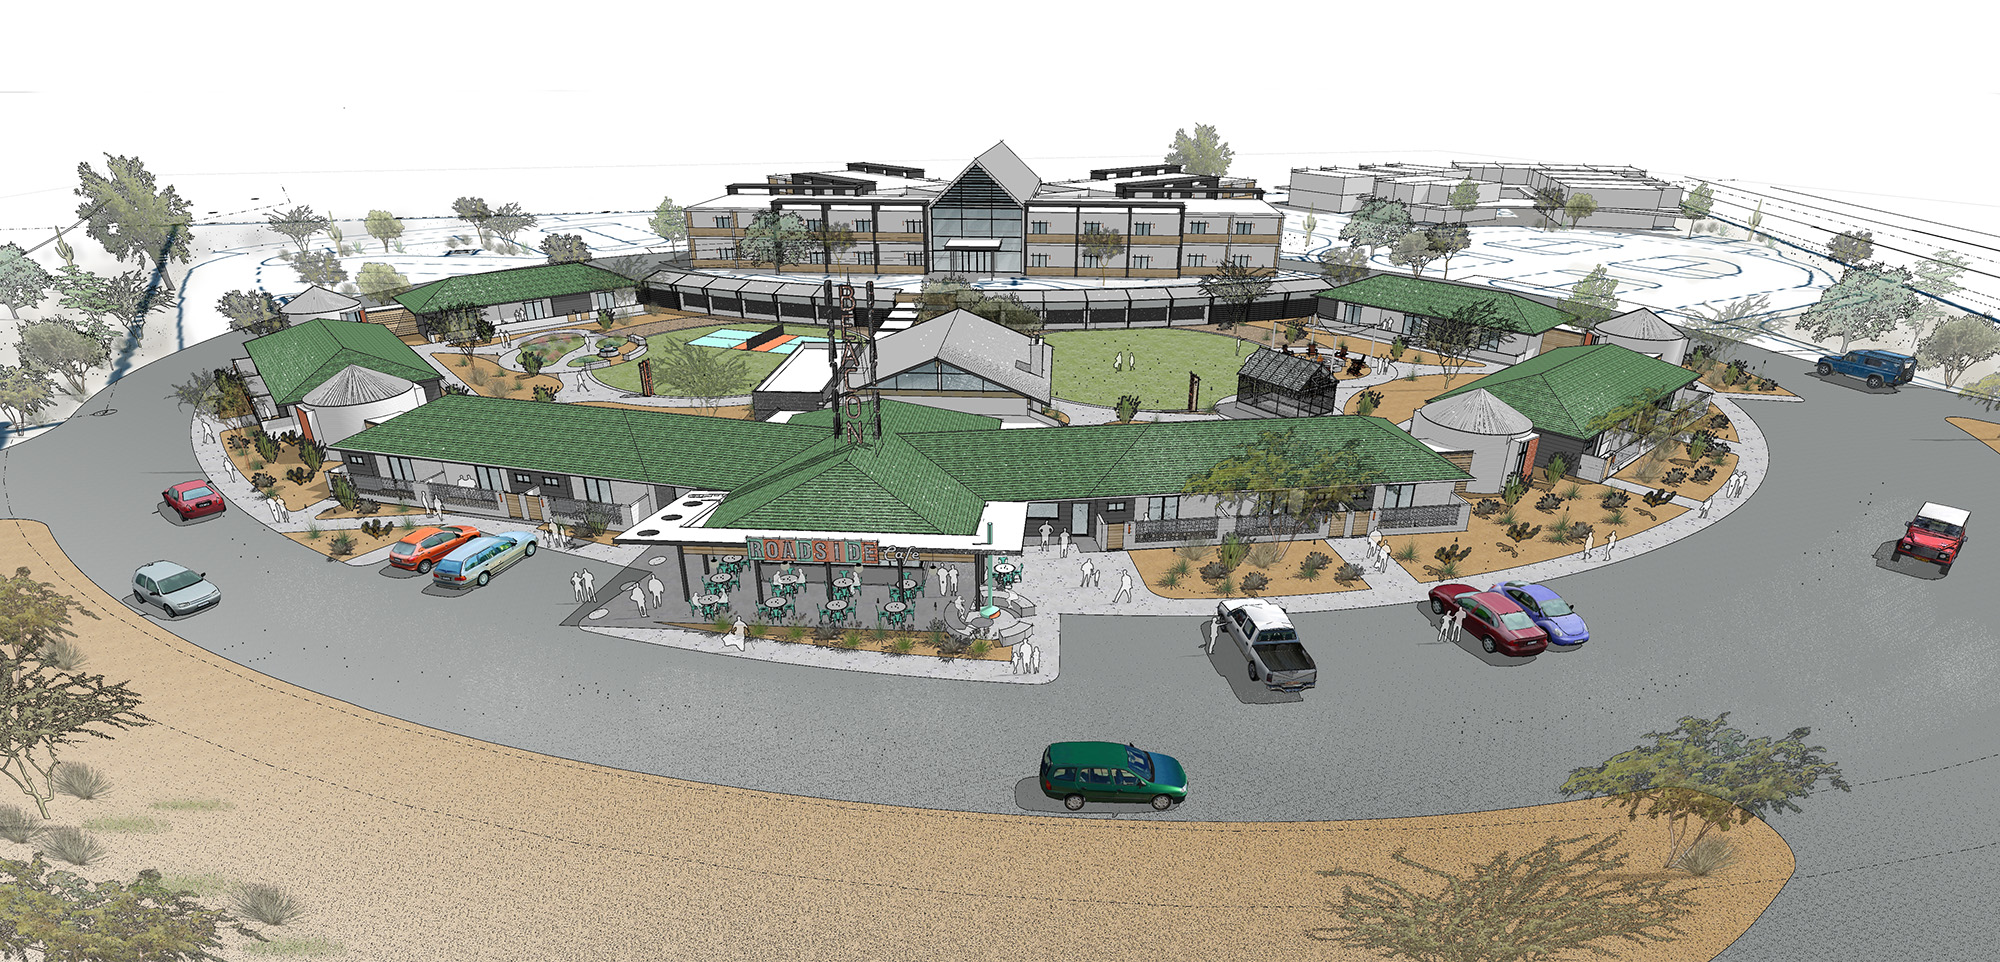 Beacon-Lodge-OVERALL VIEW - PHASE 2 - FINAL